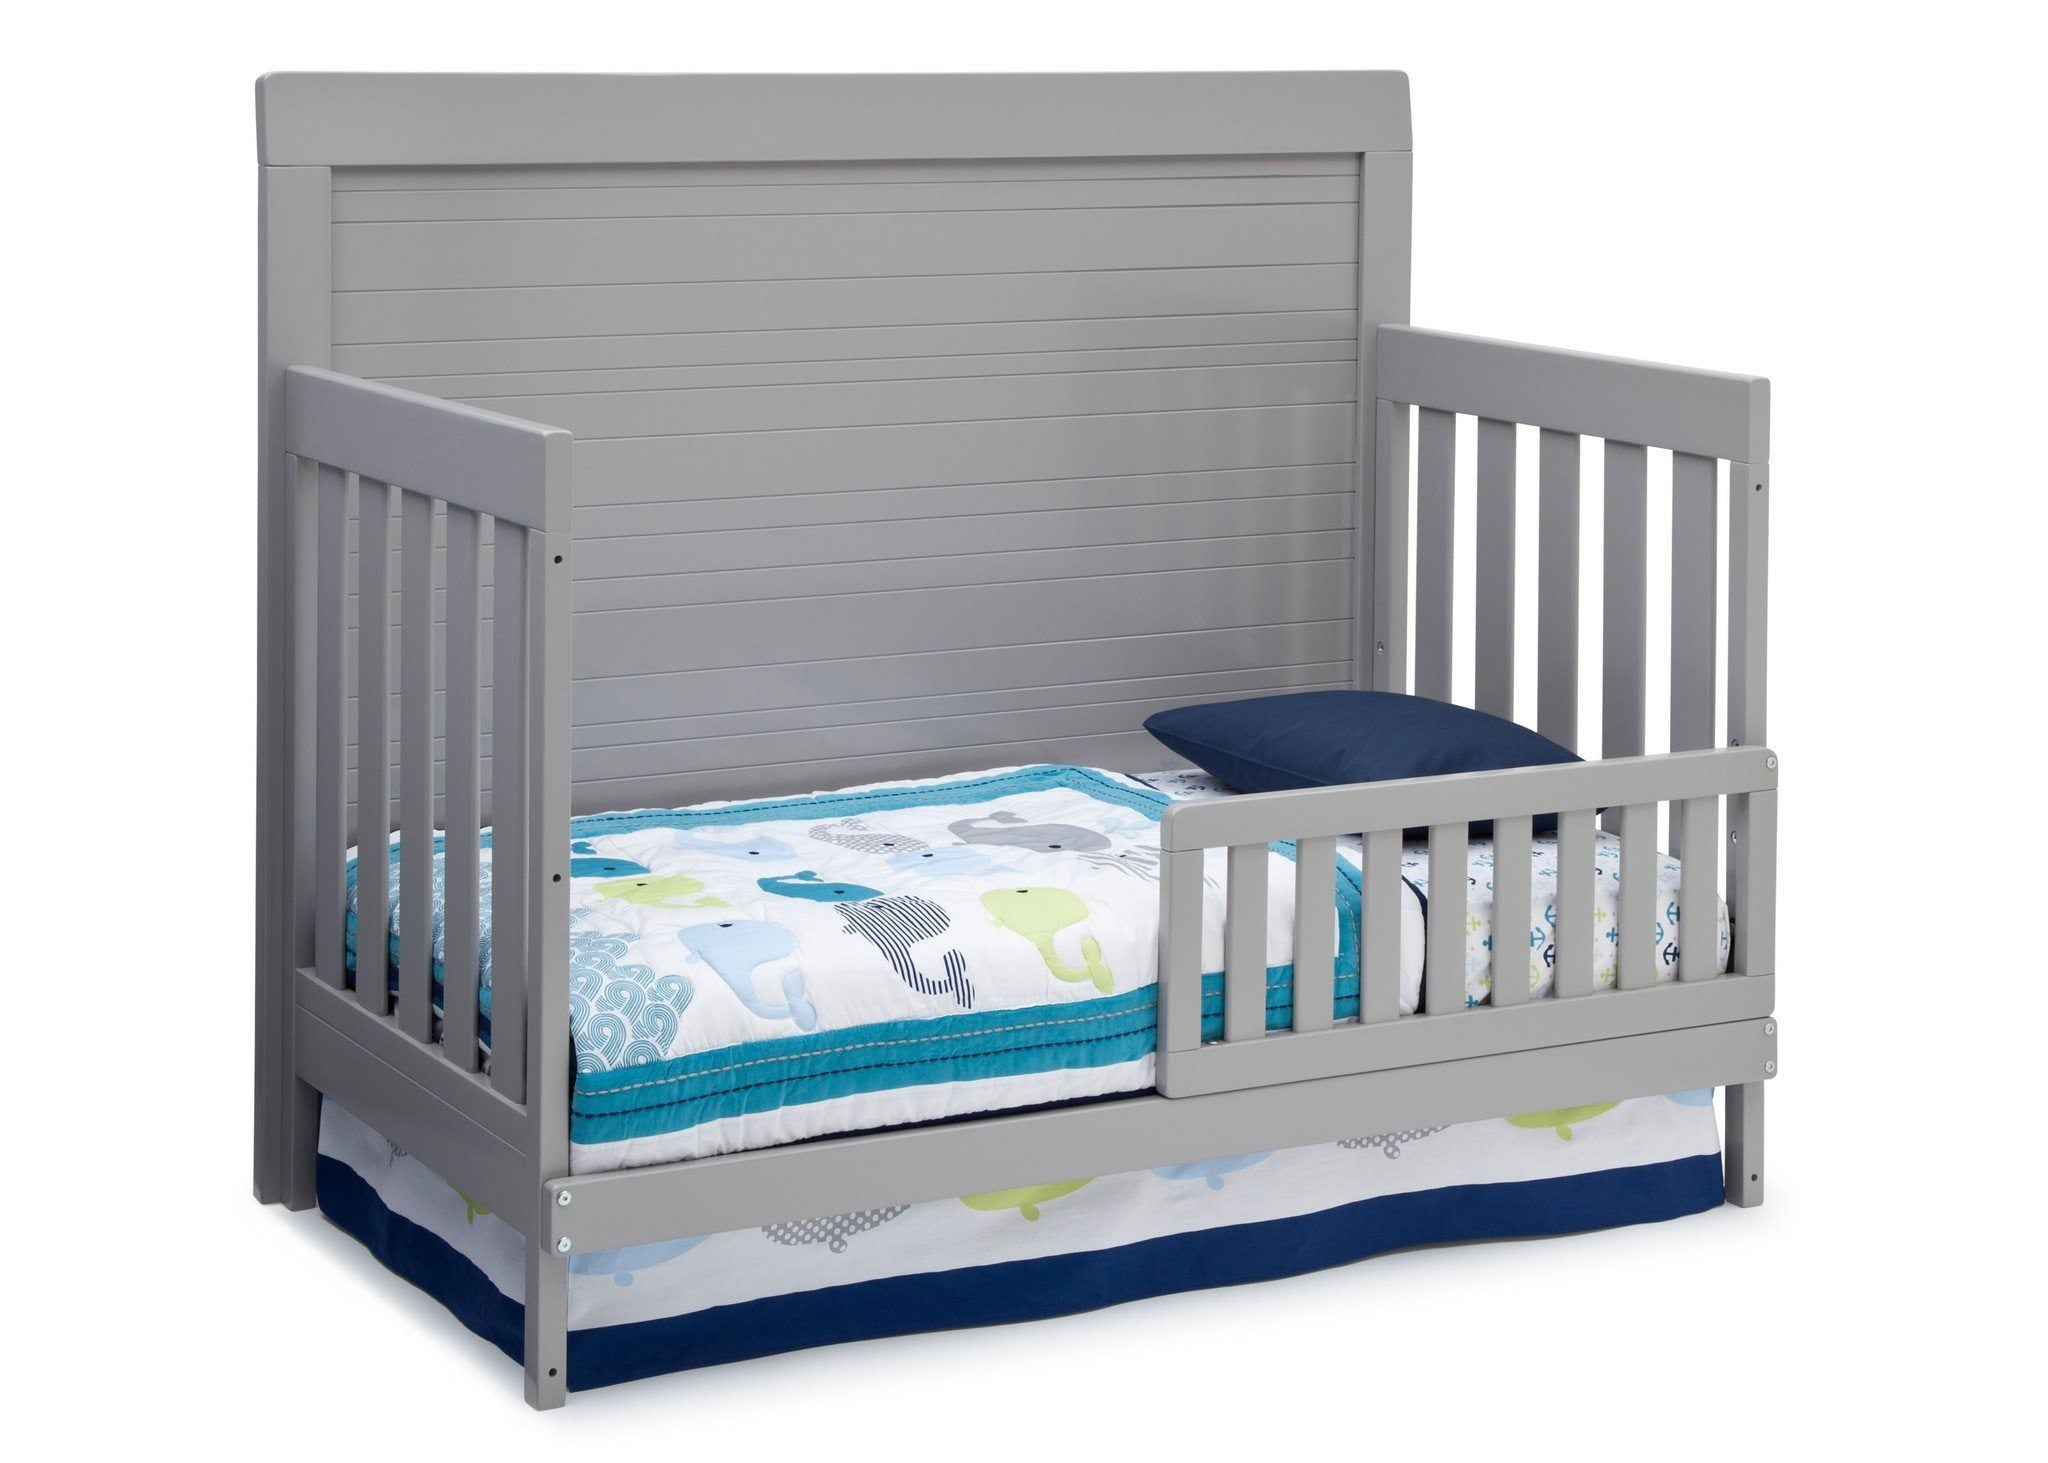 instructions for converting delta crib to toddler bed